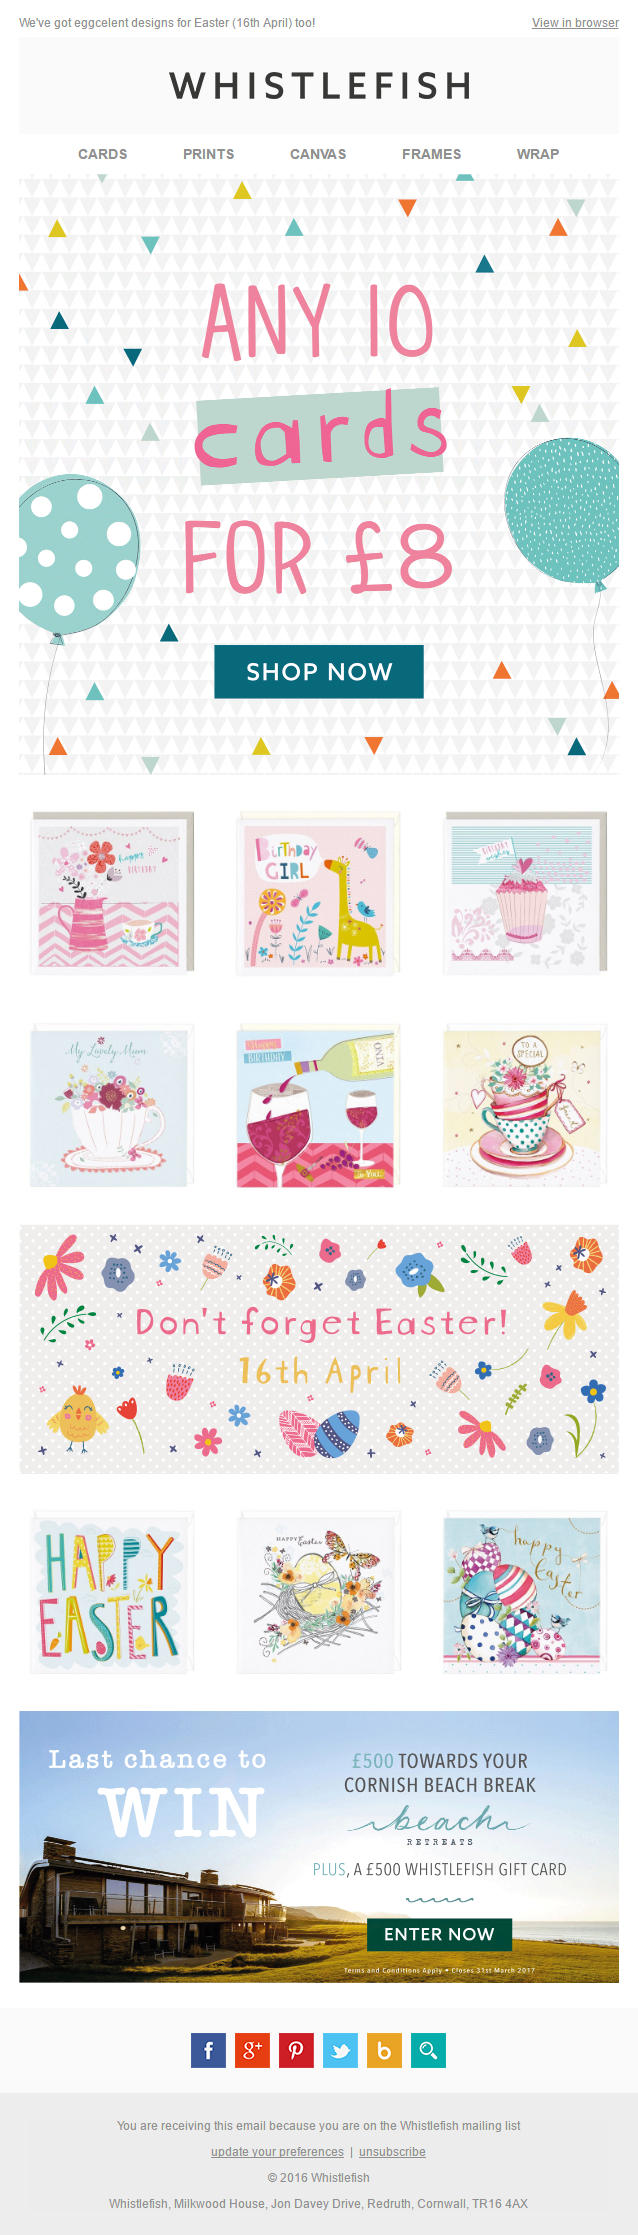 Easter email from whistlefish with offer emailmarketing email easter email from whistlefish with offer emailmarketing email marketing easter cards gifts negle Gallery